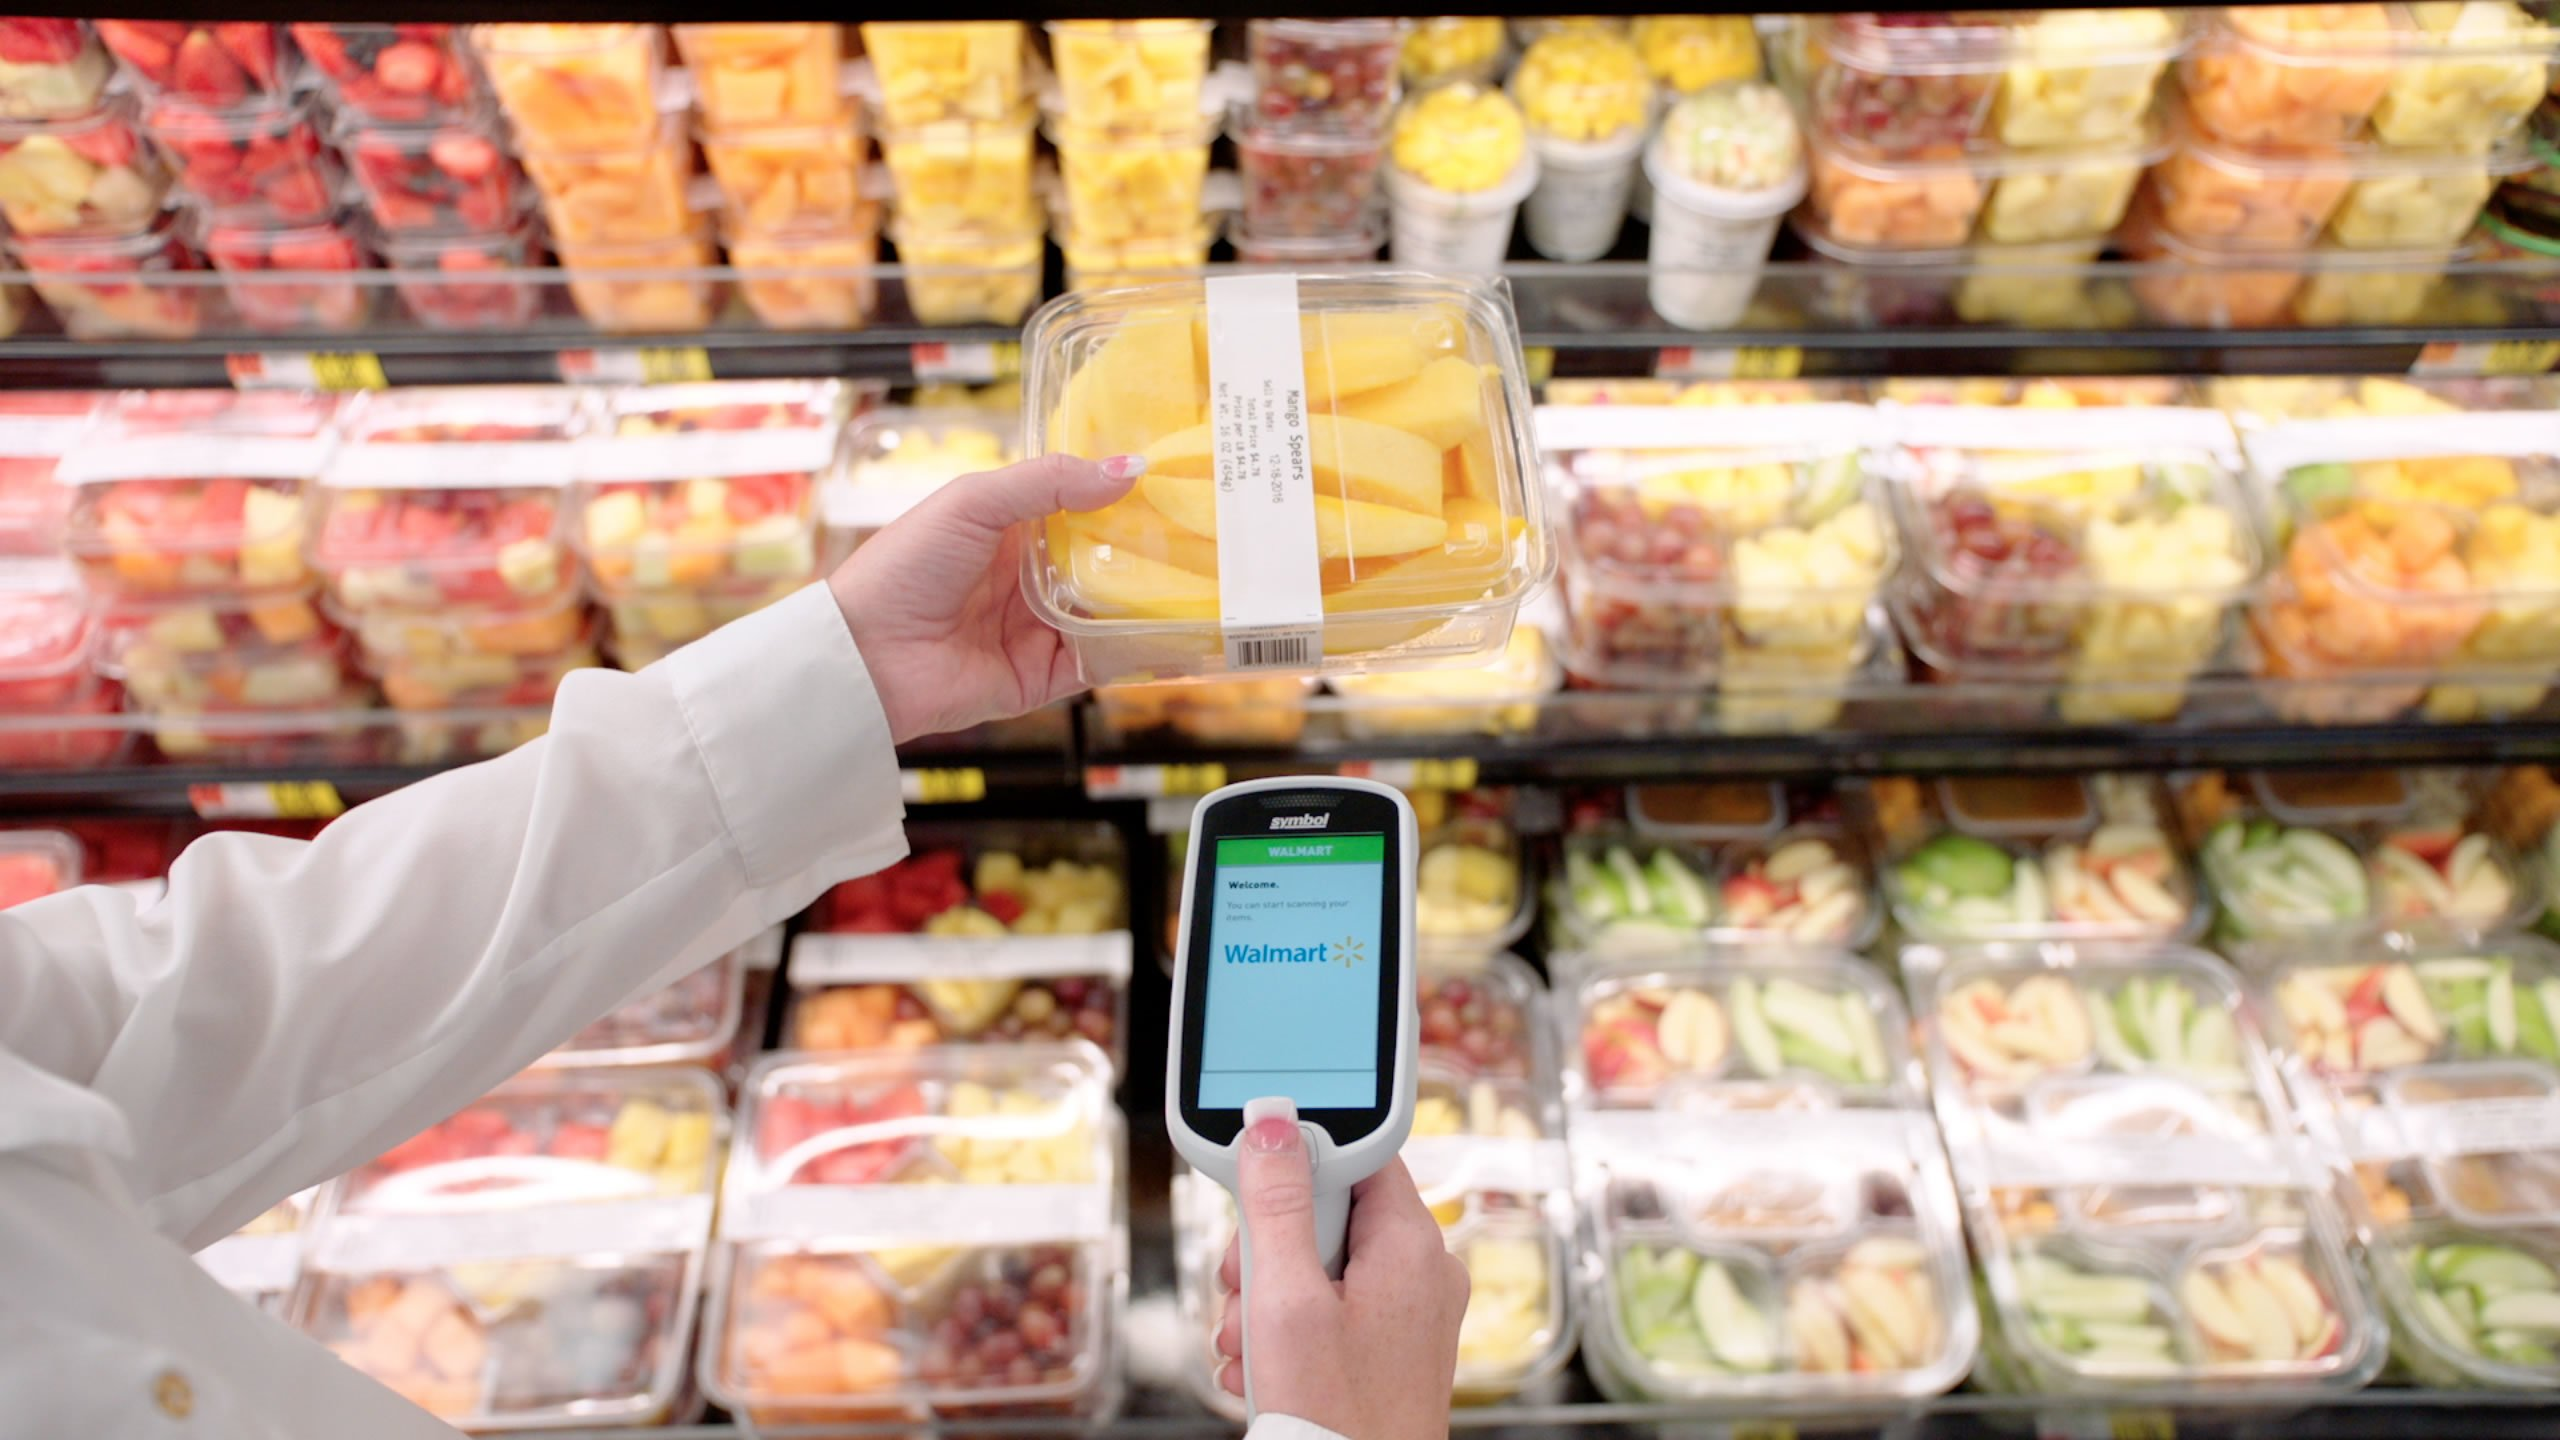 A customer uses a Scan & Go handheld device to scan fresh mango produce